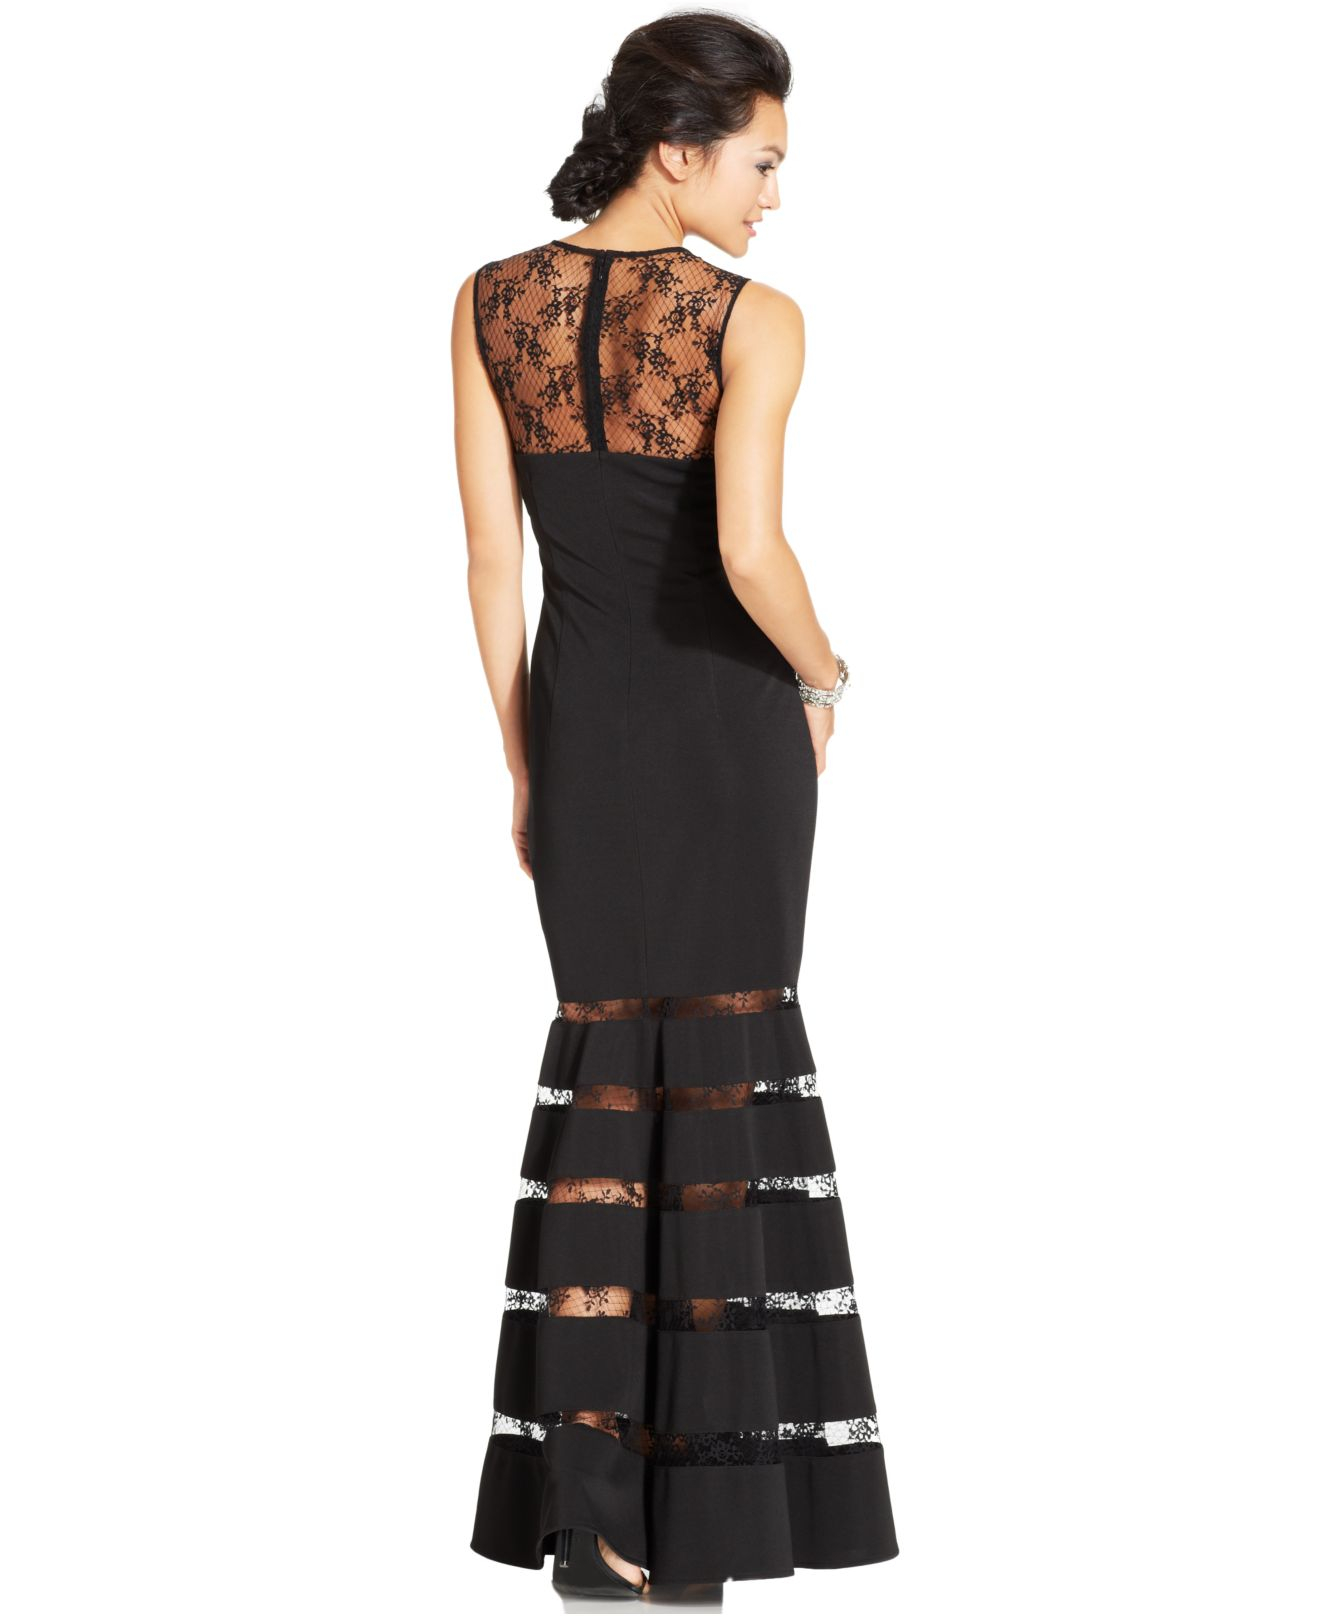 Lyst - Js Collections Illusion Lace Mermaid Gown in Black